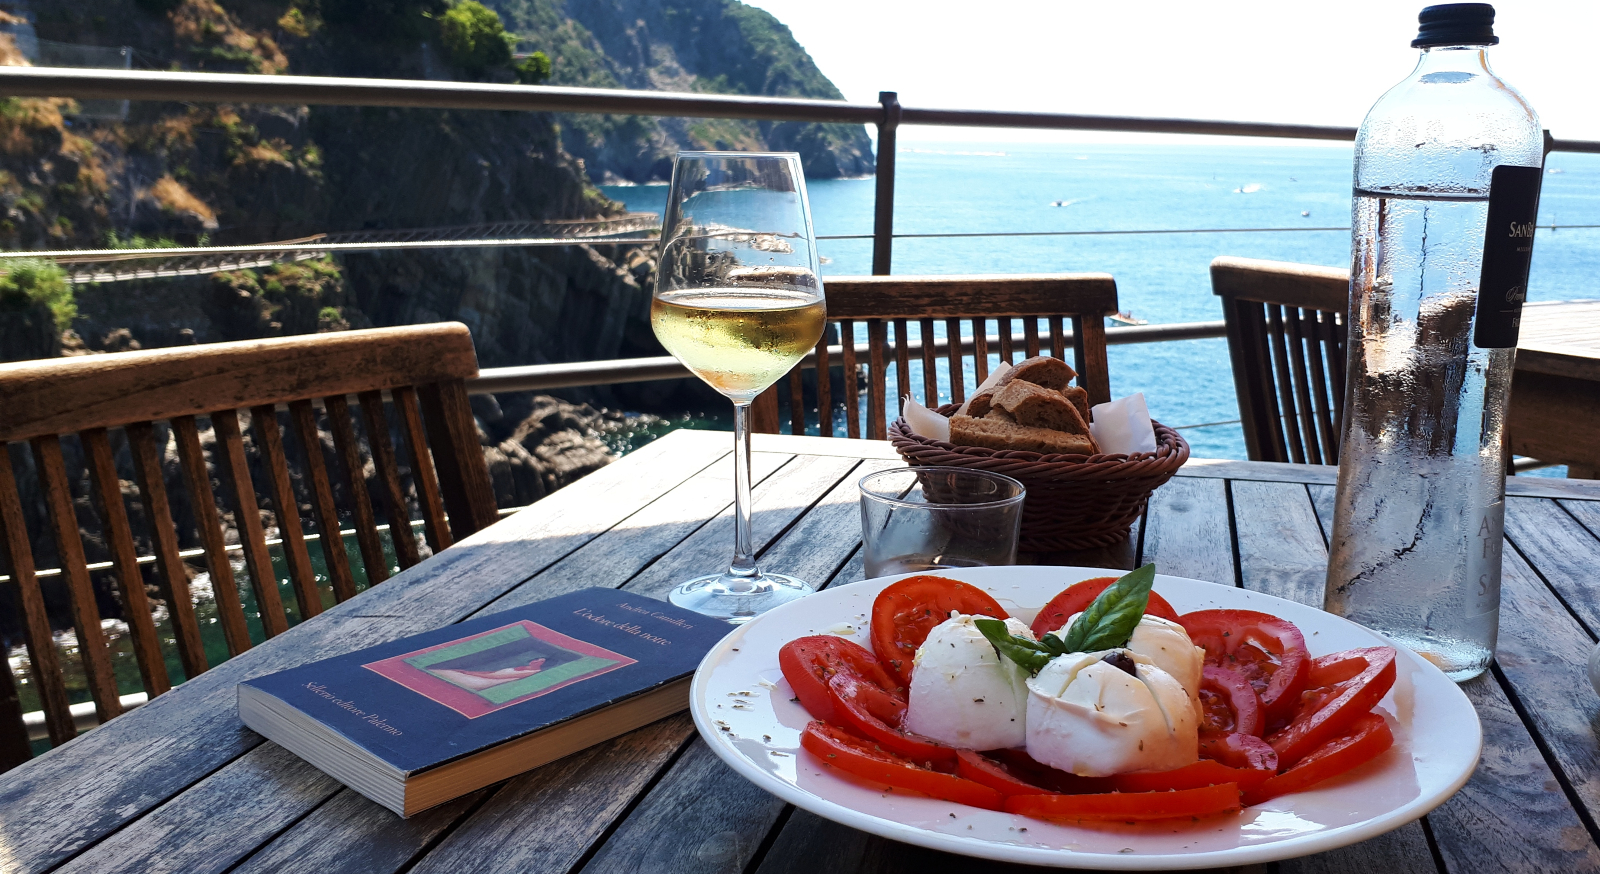 Best places for an aperitif between Portofino and Cinque Terre